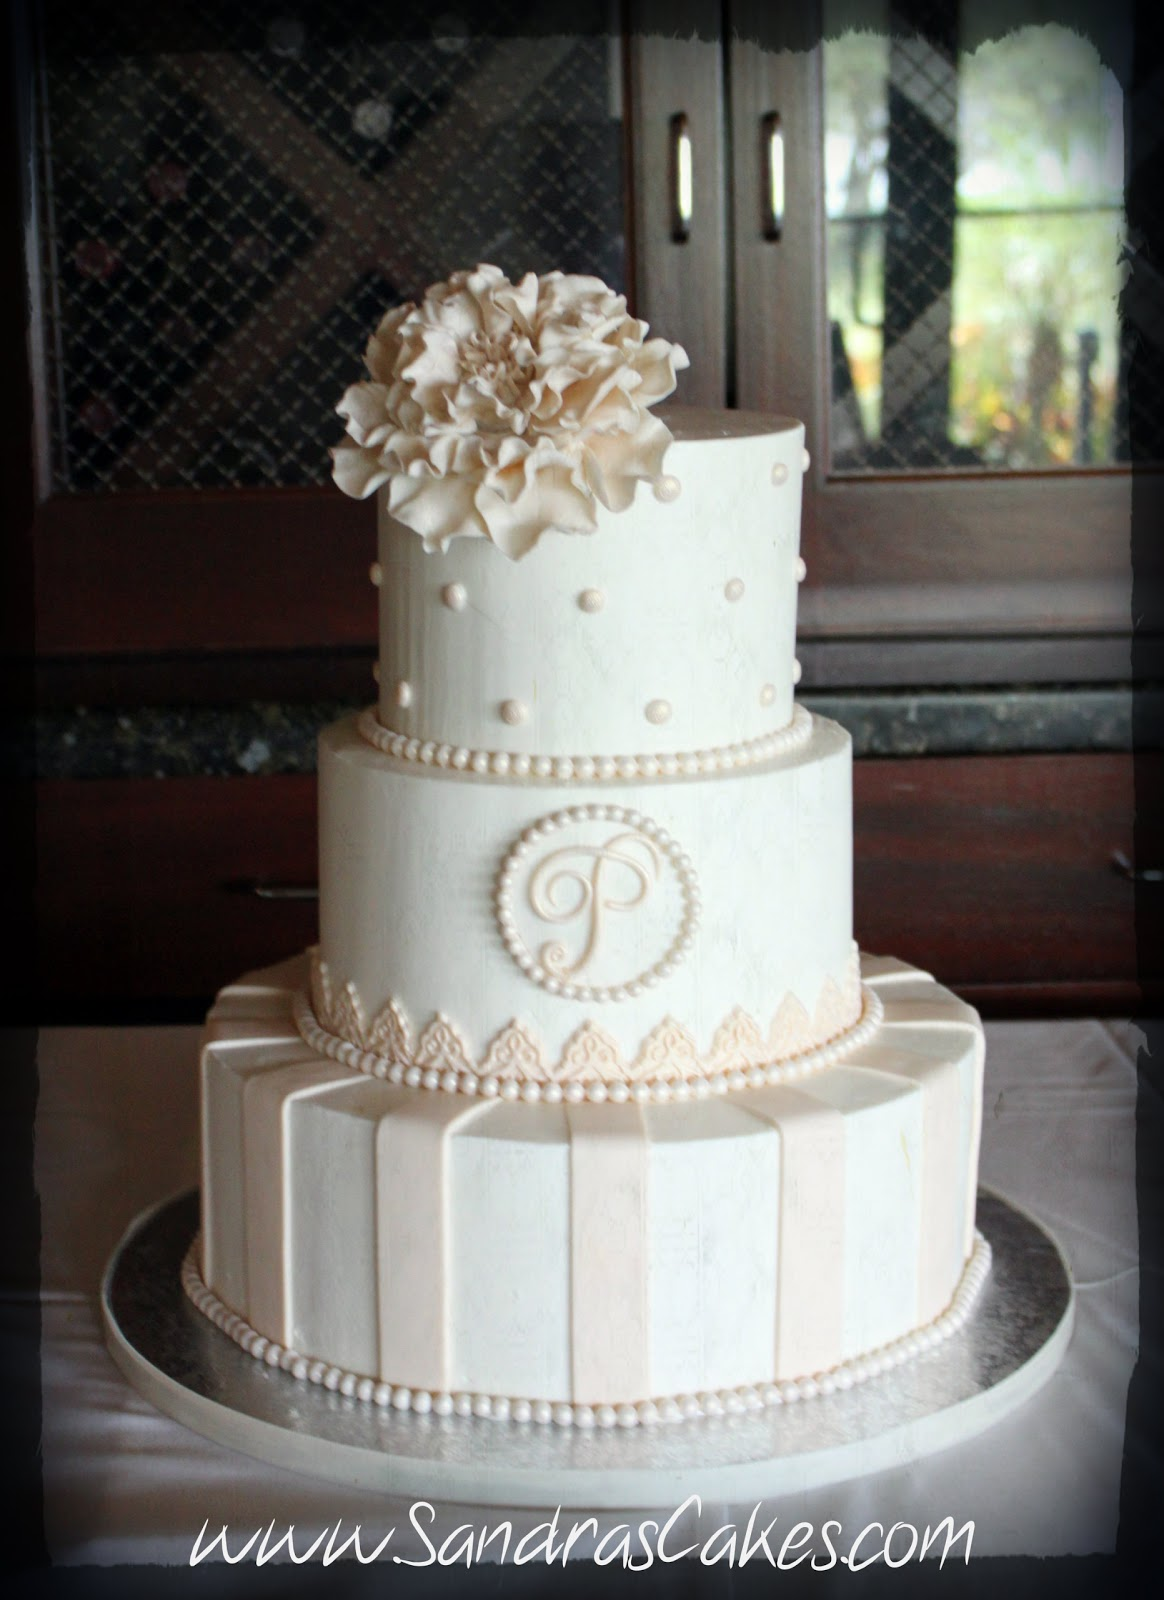 Surprising Simple Elegant Wedding Cakes Pictures Pictures Designs ...